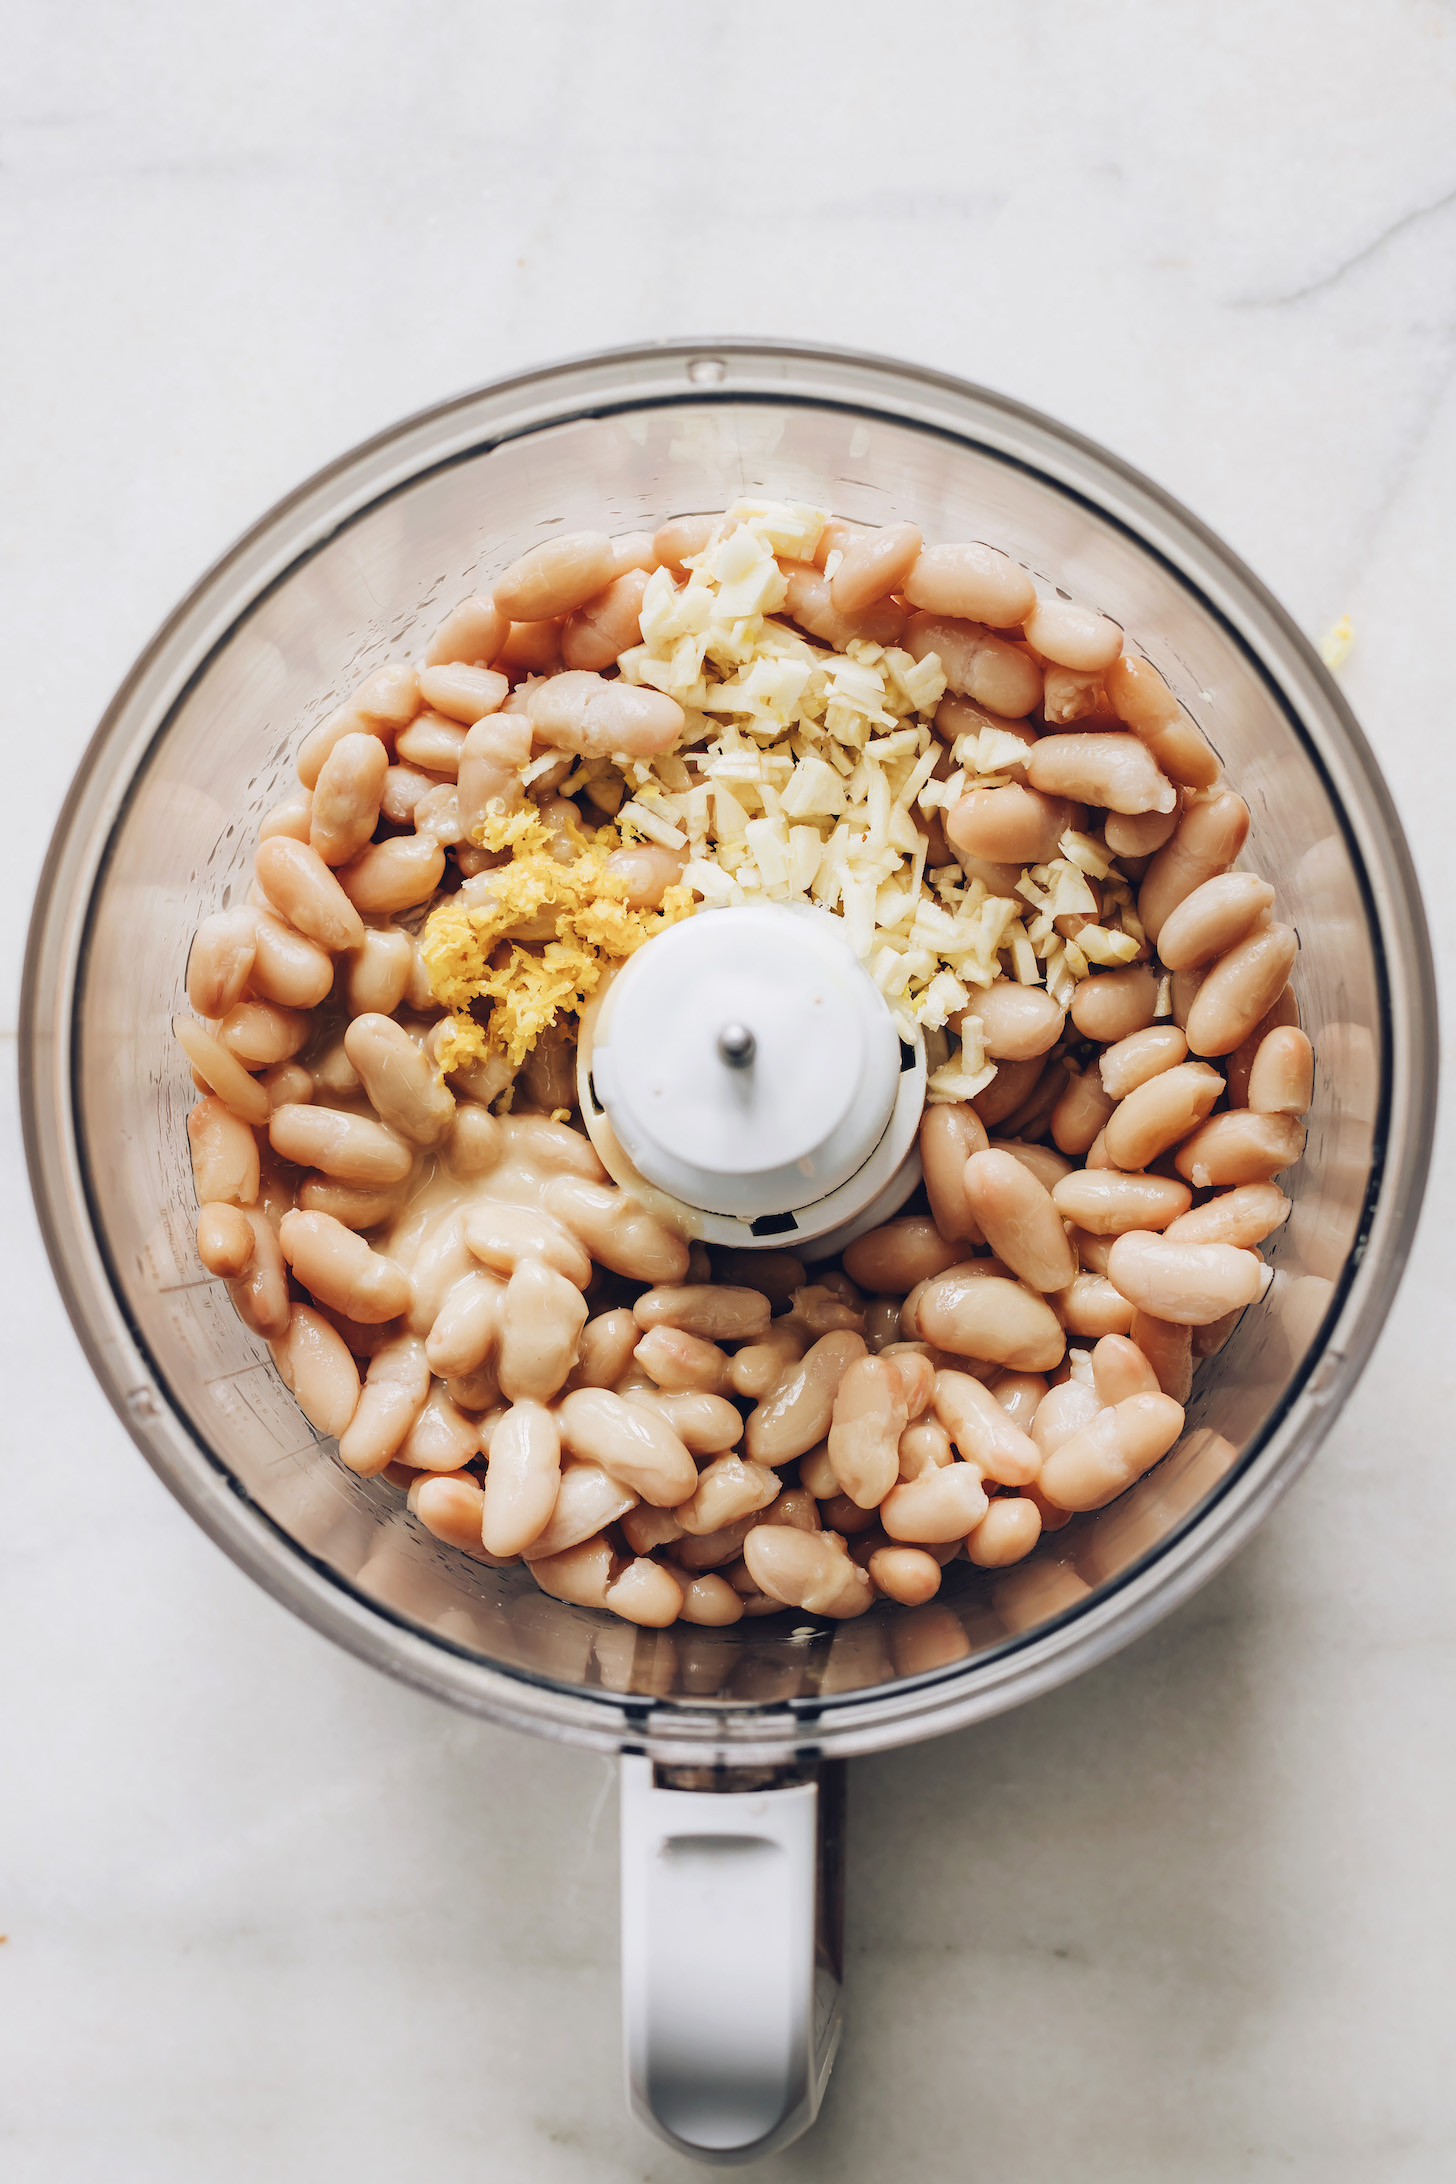 Food processor with white beans, garlic, and lemon zest